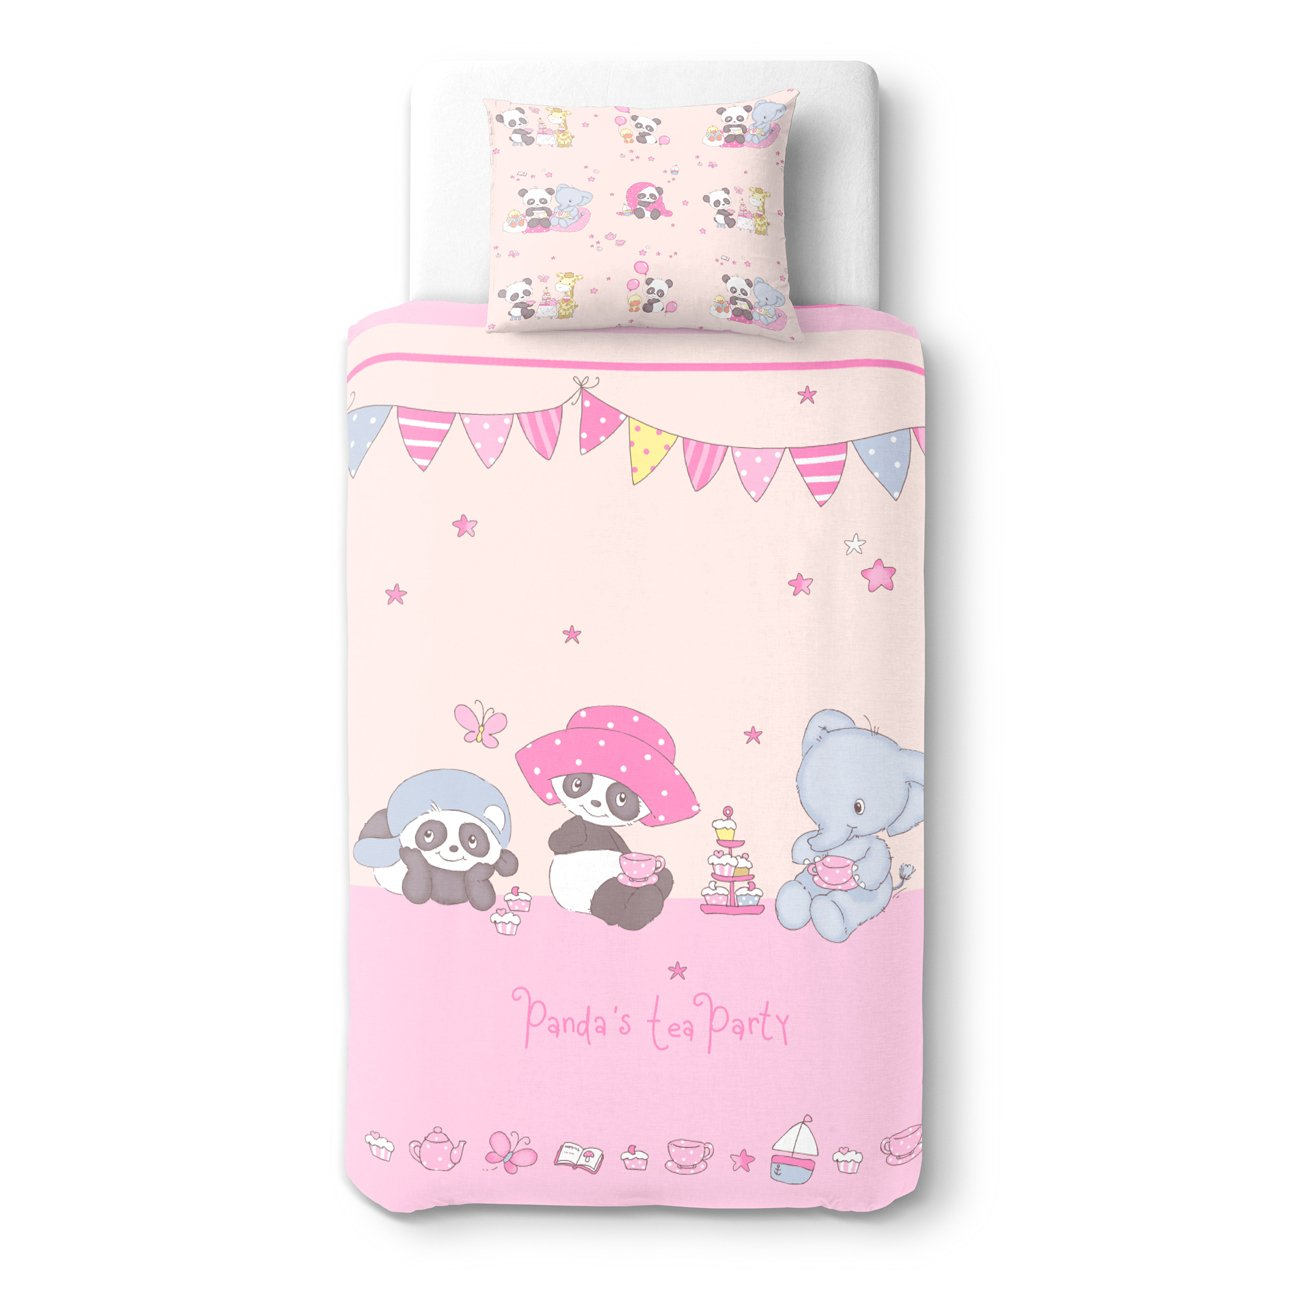 Baby Panda's Tea Party - SoulBedroom 100% Cotton Bed Set (Duvet Cover 39x 55 cm & Pillow Case 15x 23 cm)